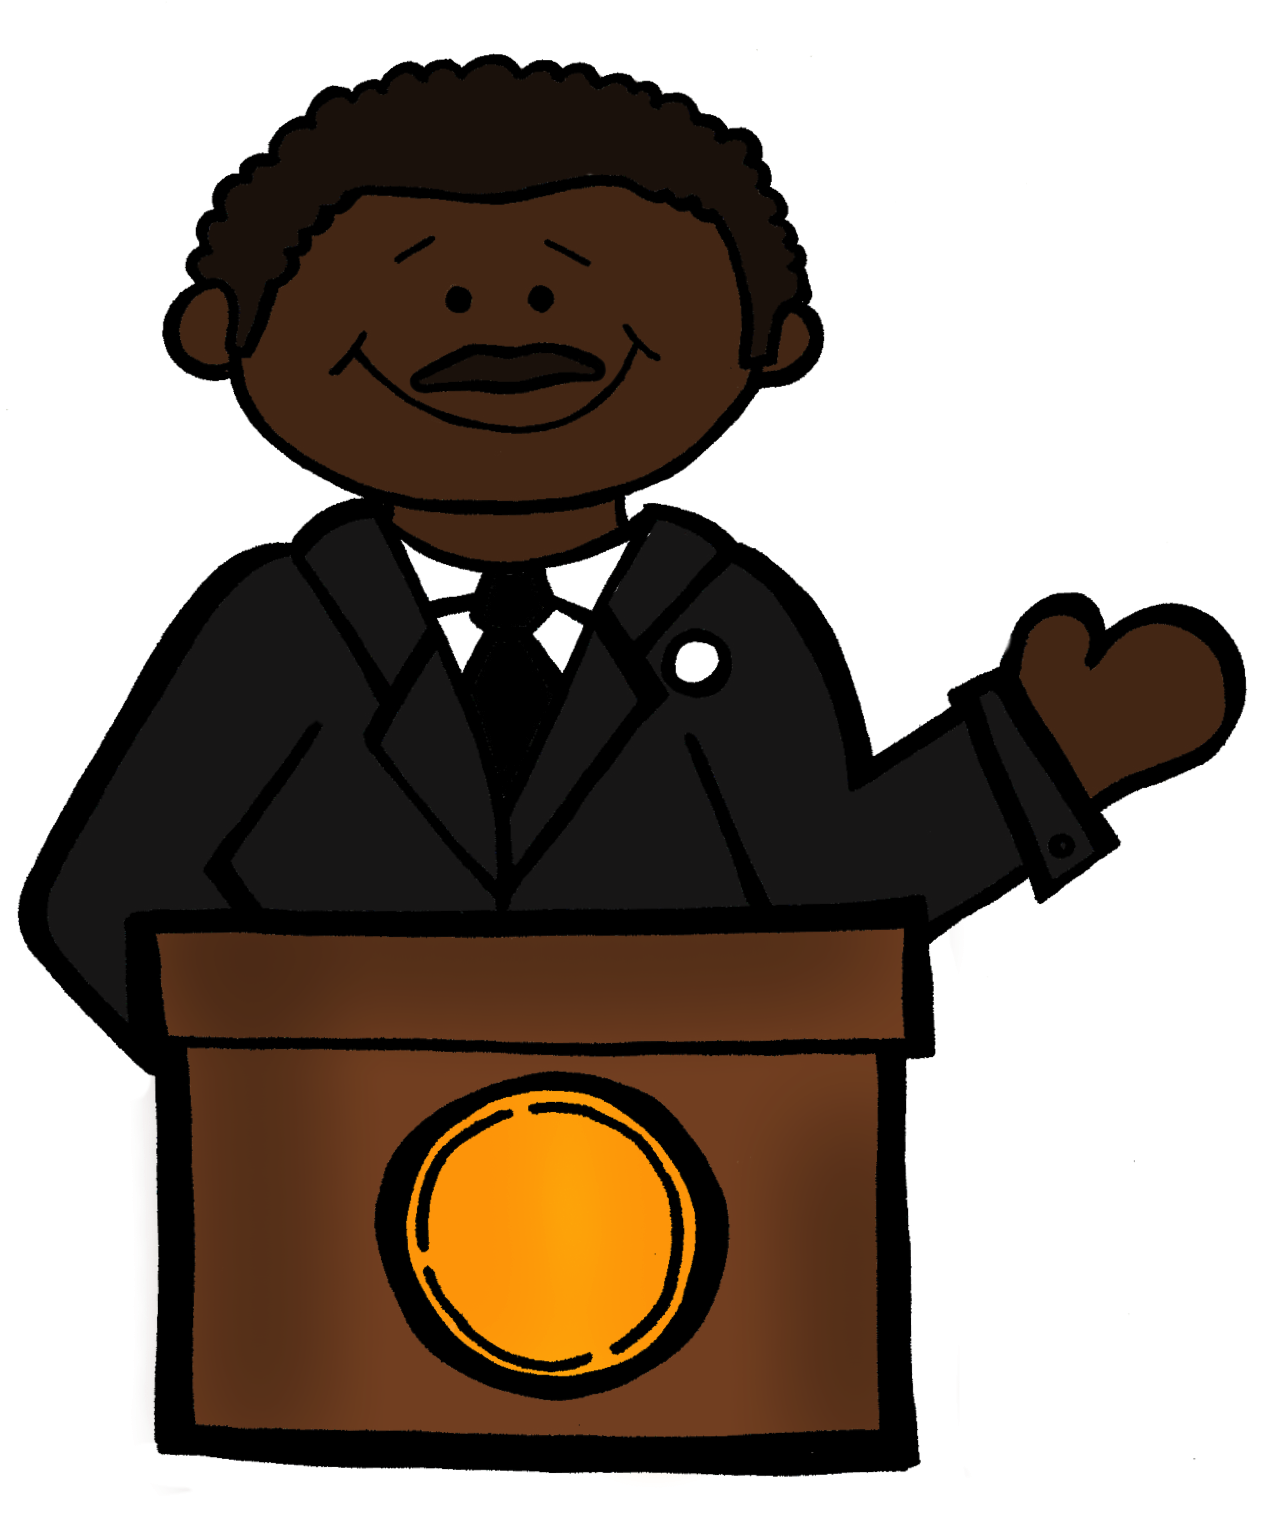 1265x1533 Mlk Clipart Clipart Best, Martin Luther King Jr Clip Art